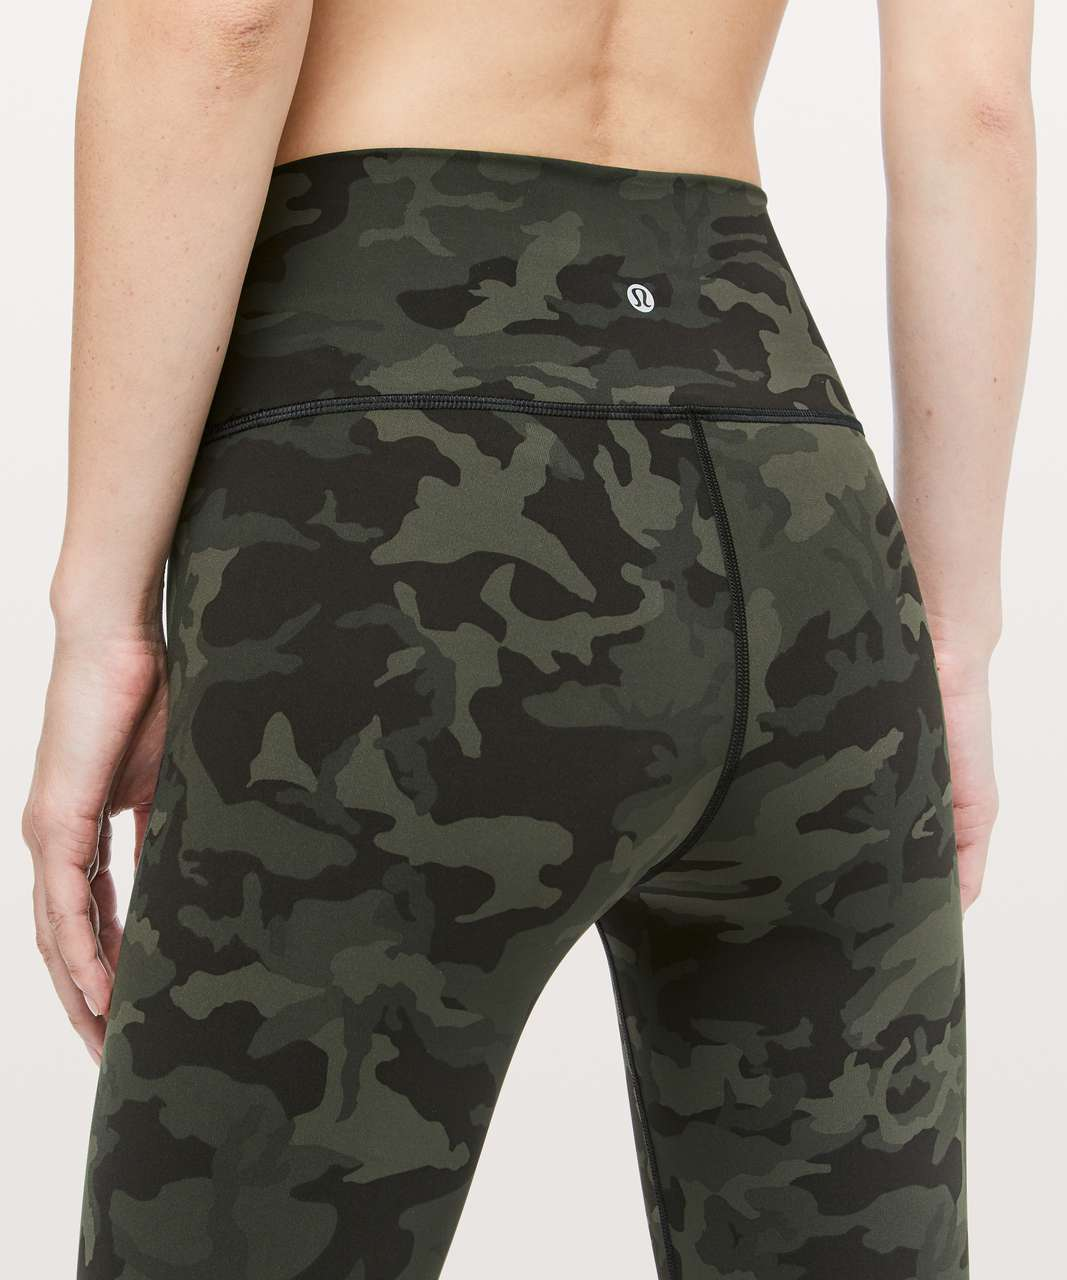 "Lululemon Wunder Under Crop (Hi-Rise) *Full-On Luxtreme 21"" - Incognito Camo Multi Gator Green"